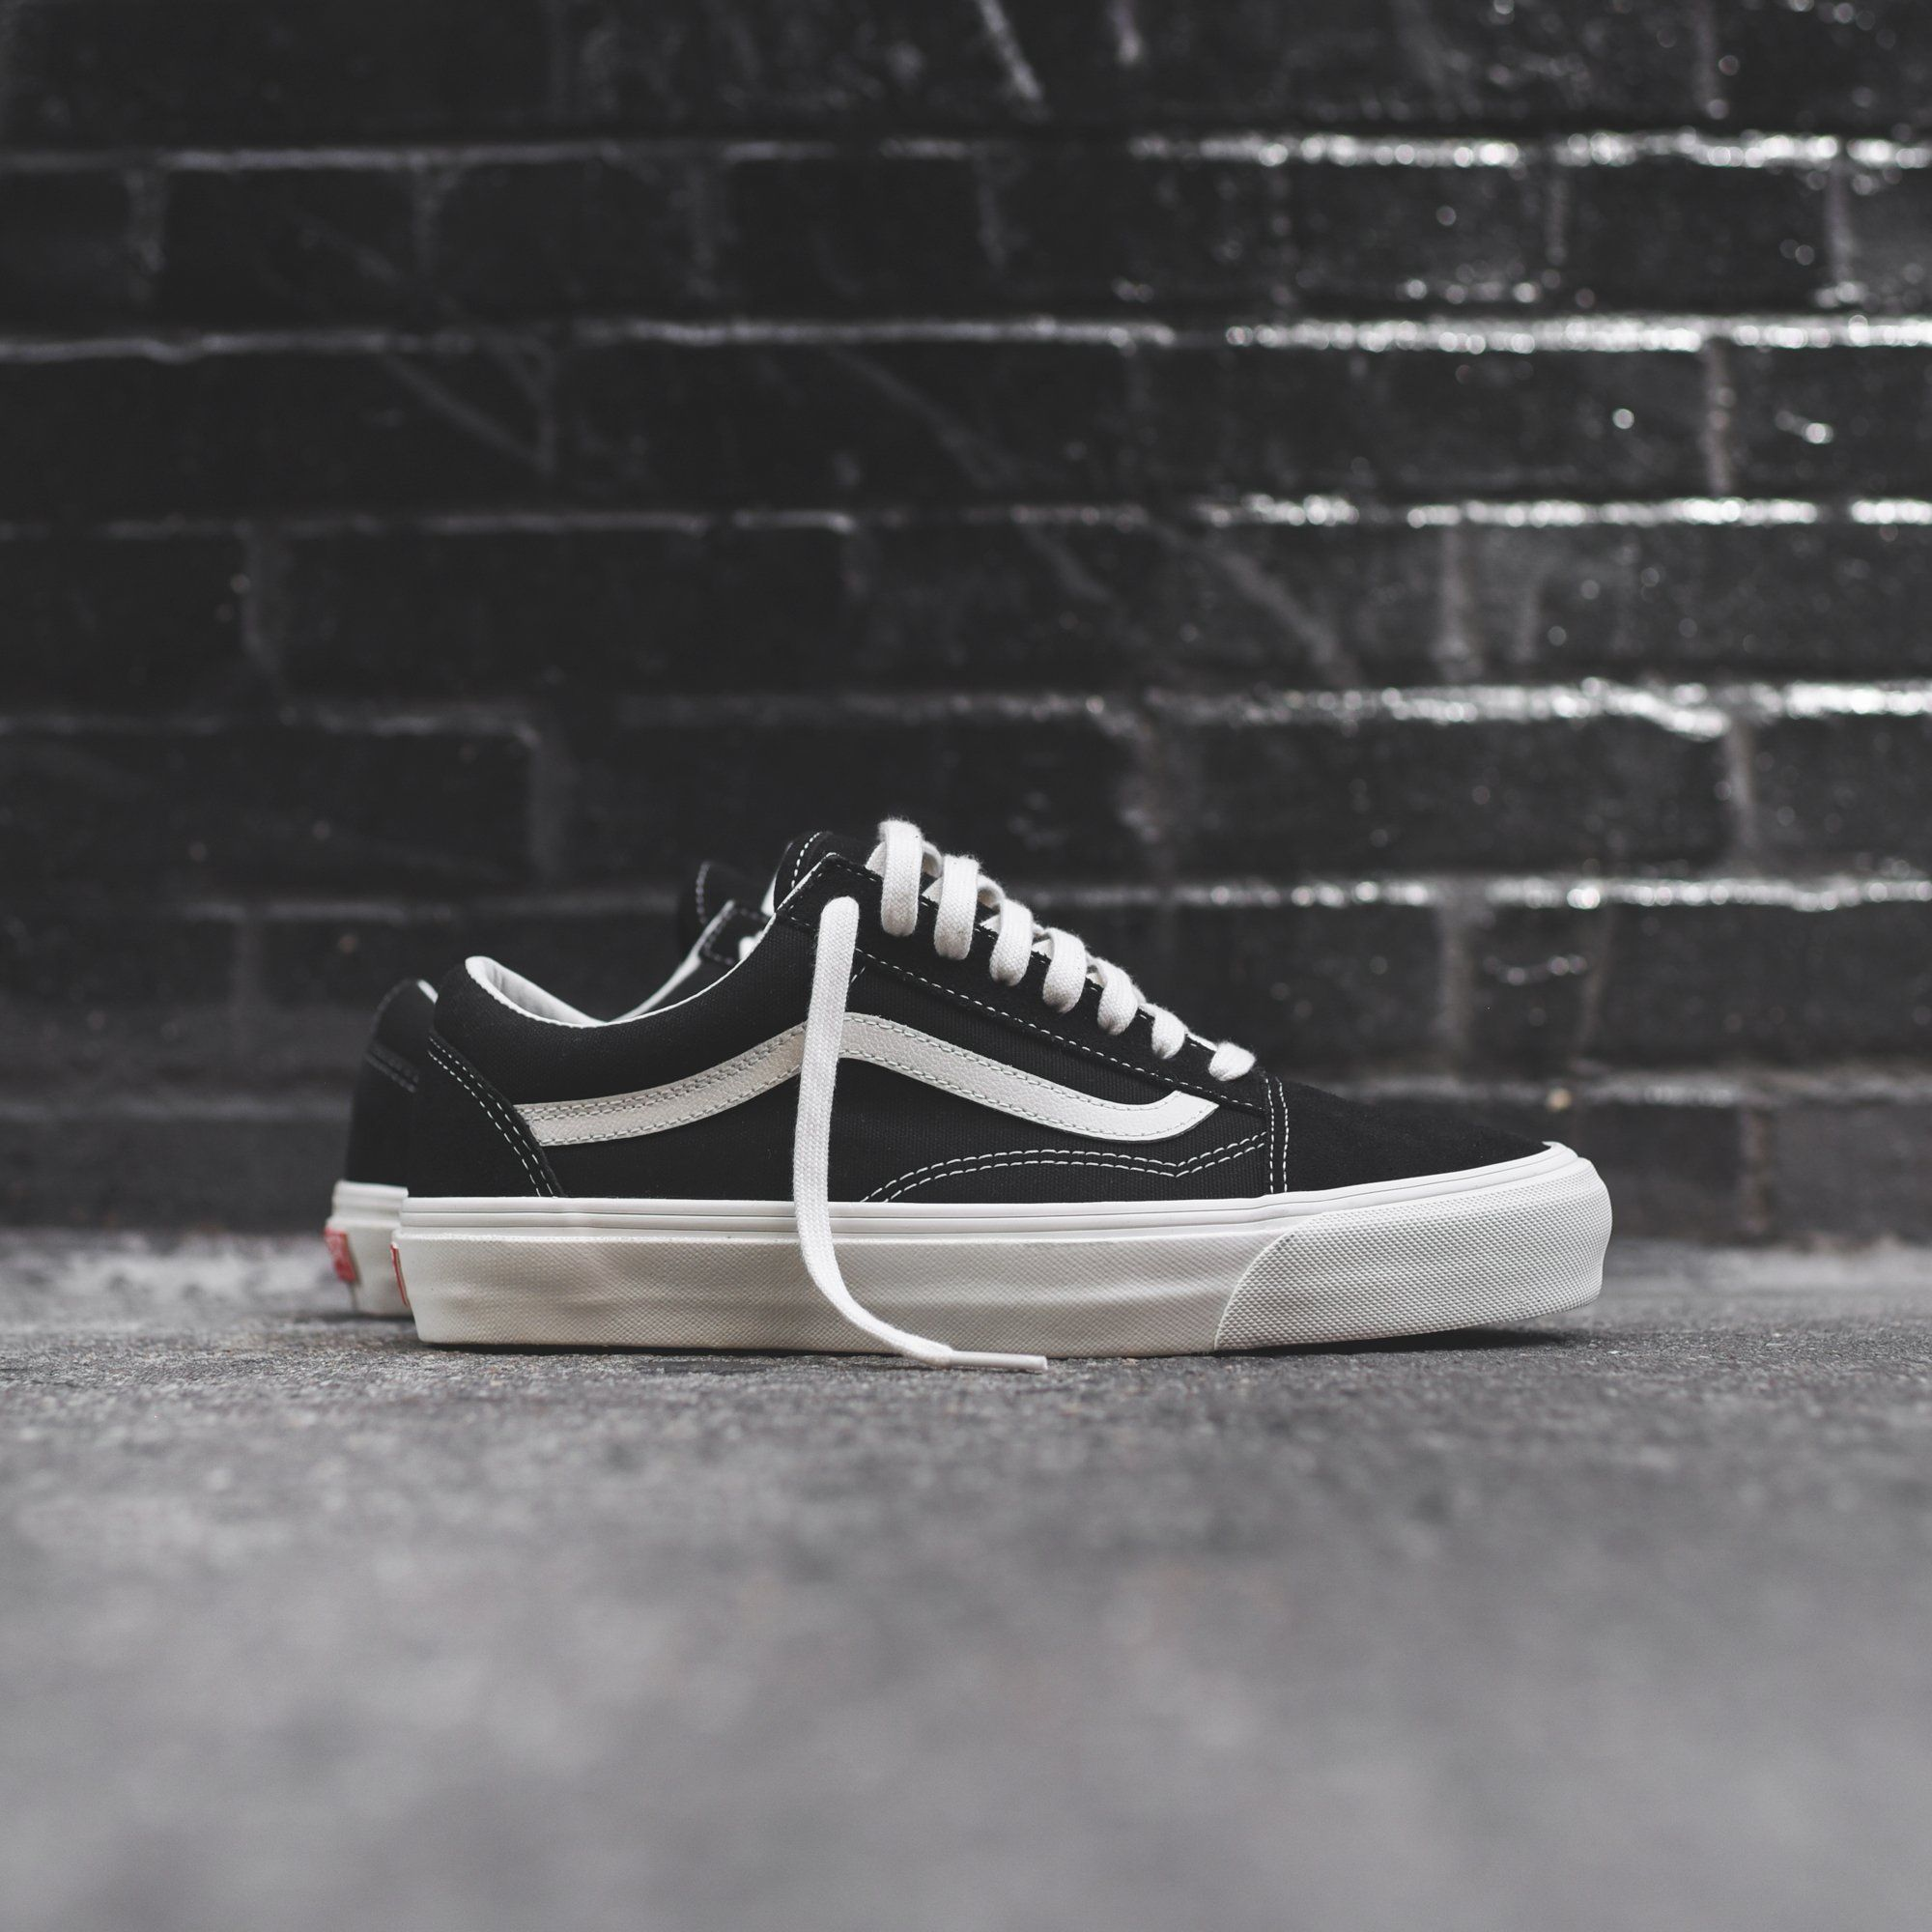 Vans OG Old Skool LX Black Marshmallow </p>